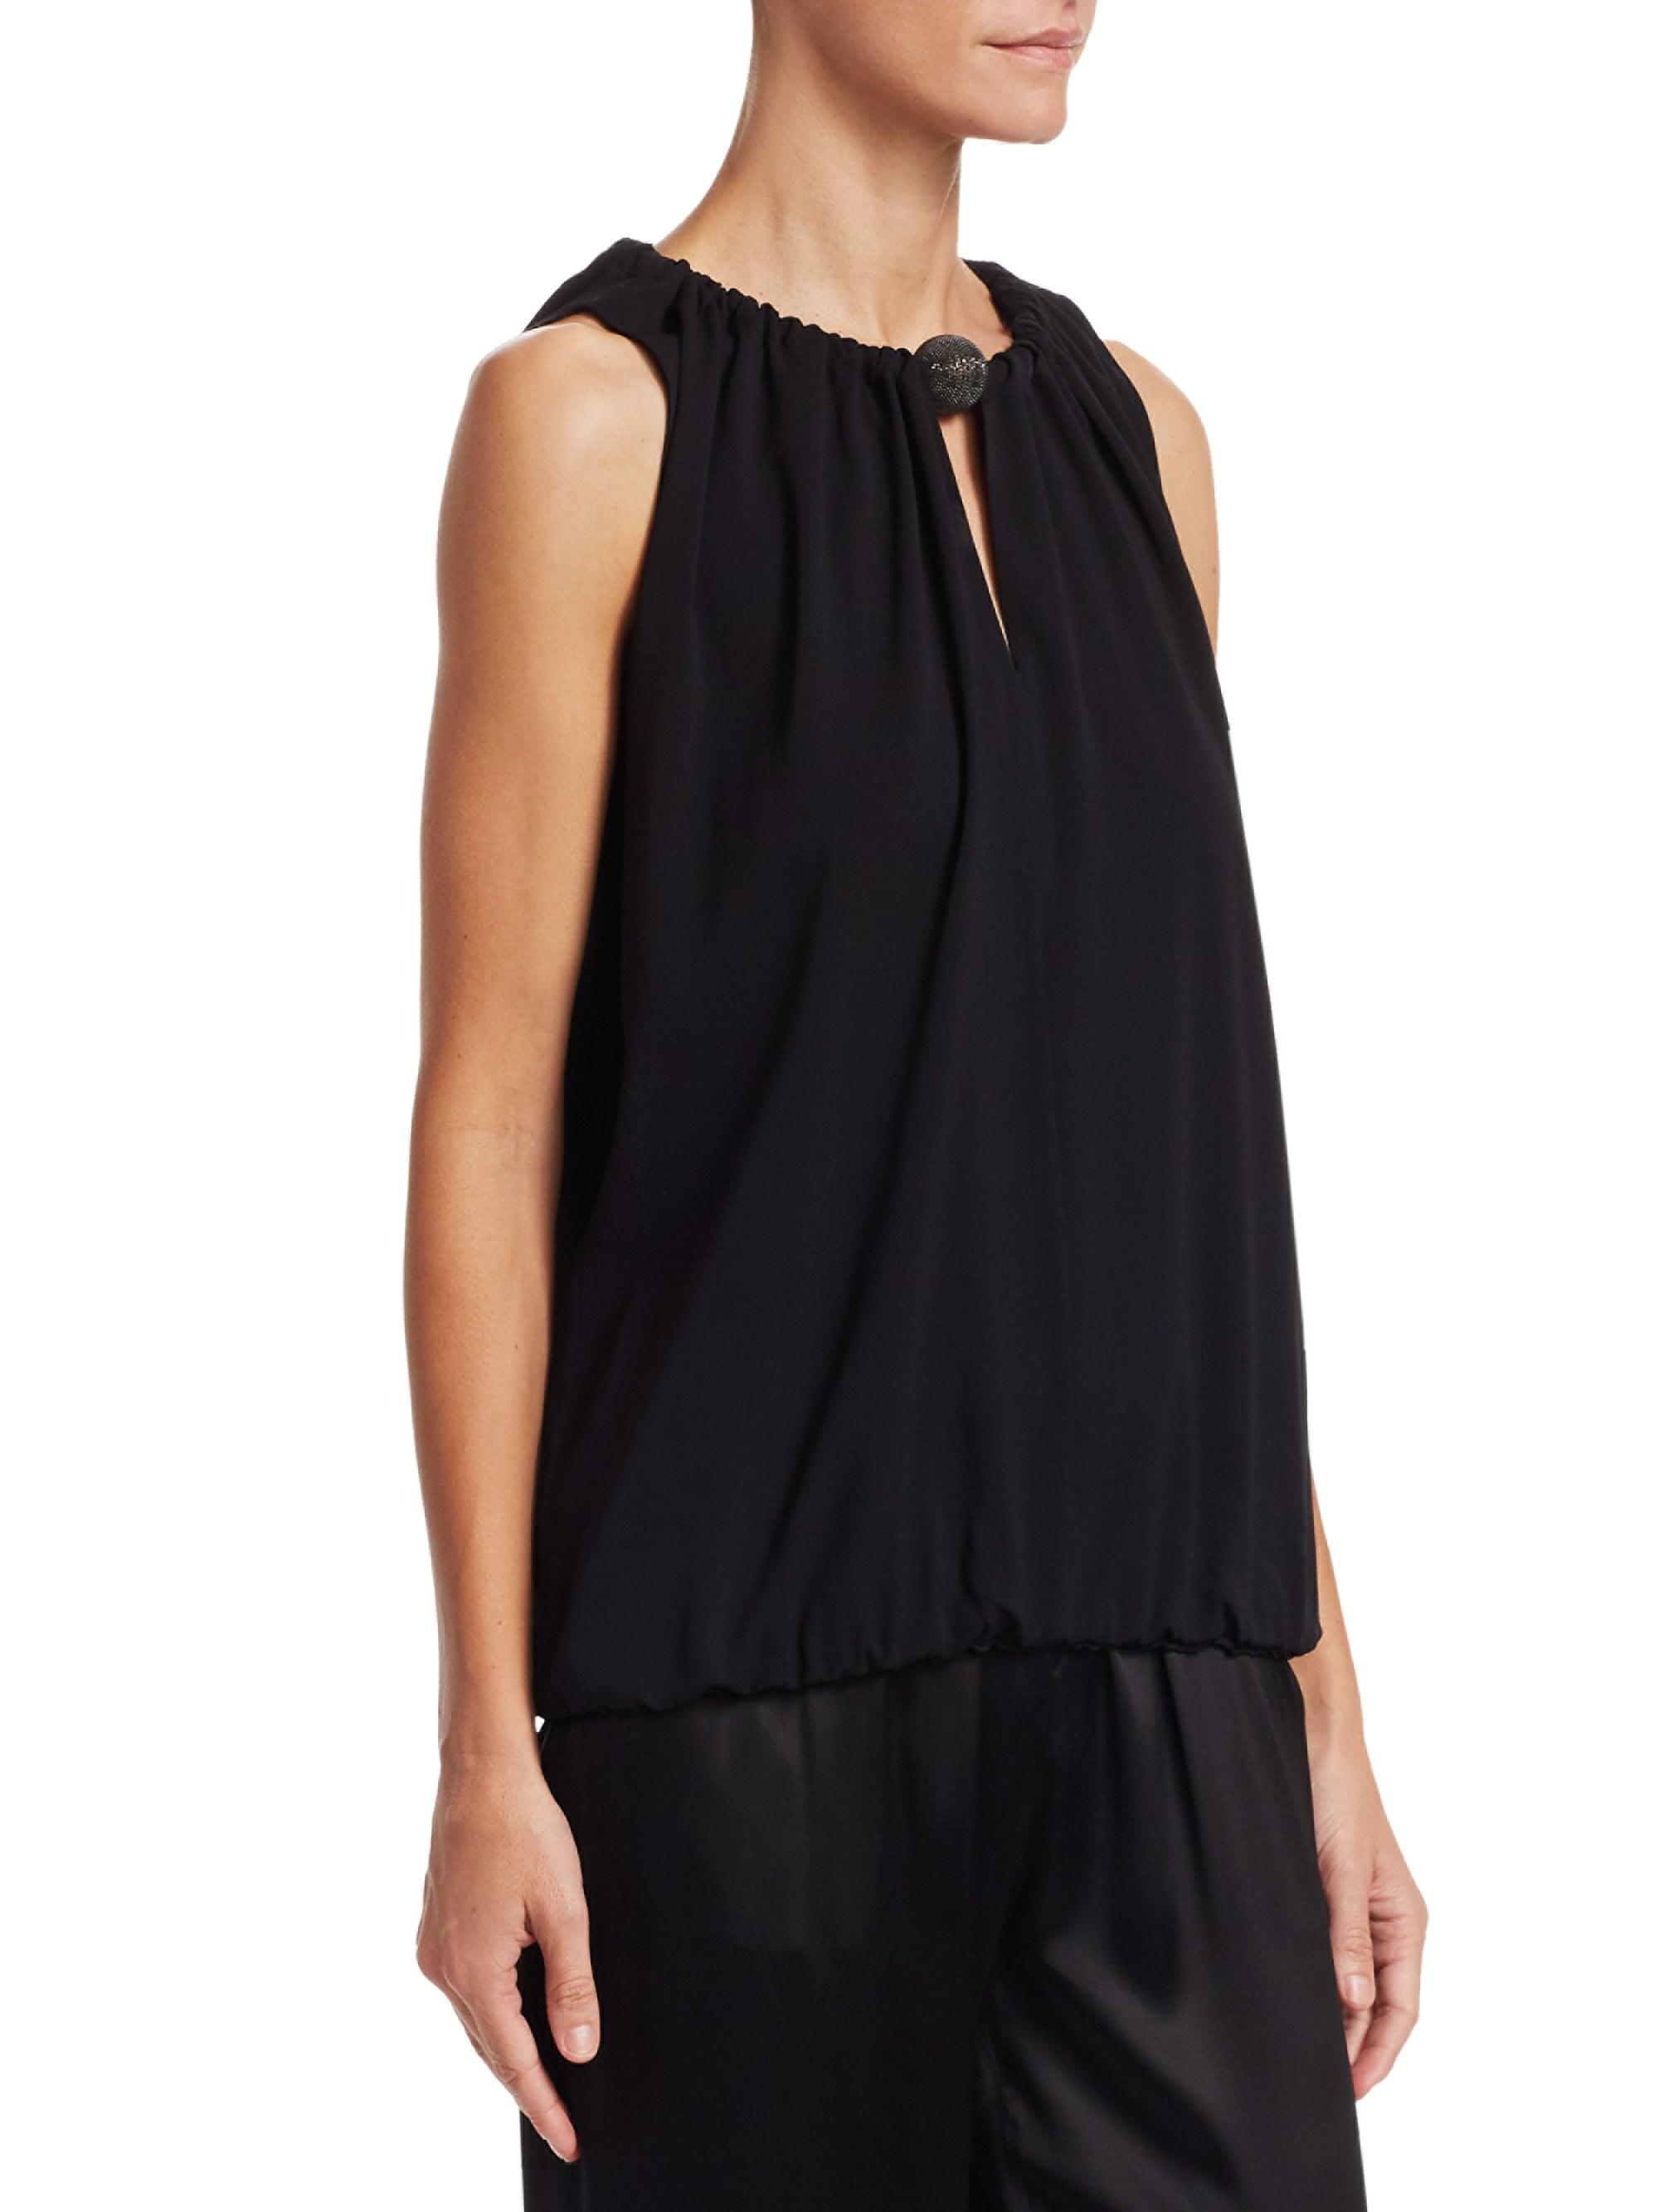 f8a0977d9d7a1 Lyst - Fabiana Filippi Women s Gathered Sleeveless Silk Popover Blouse -  Black - Size 44 (8) in Black